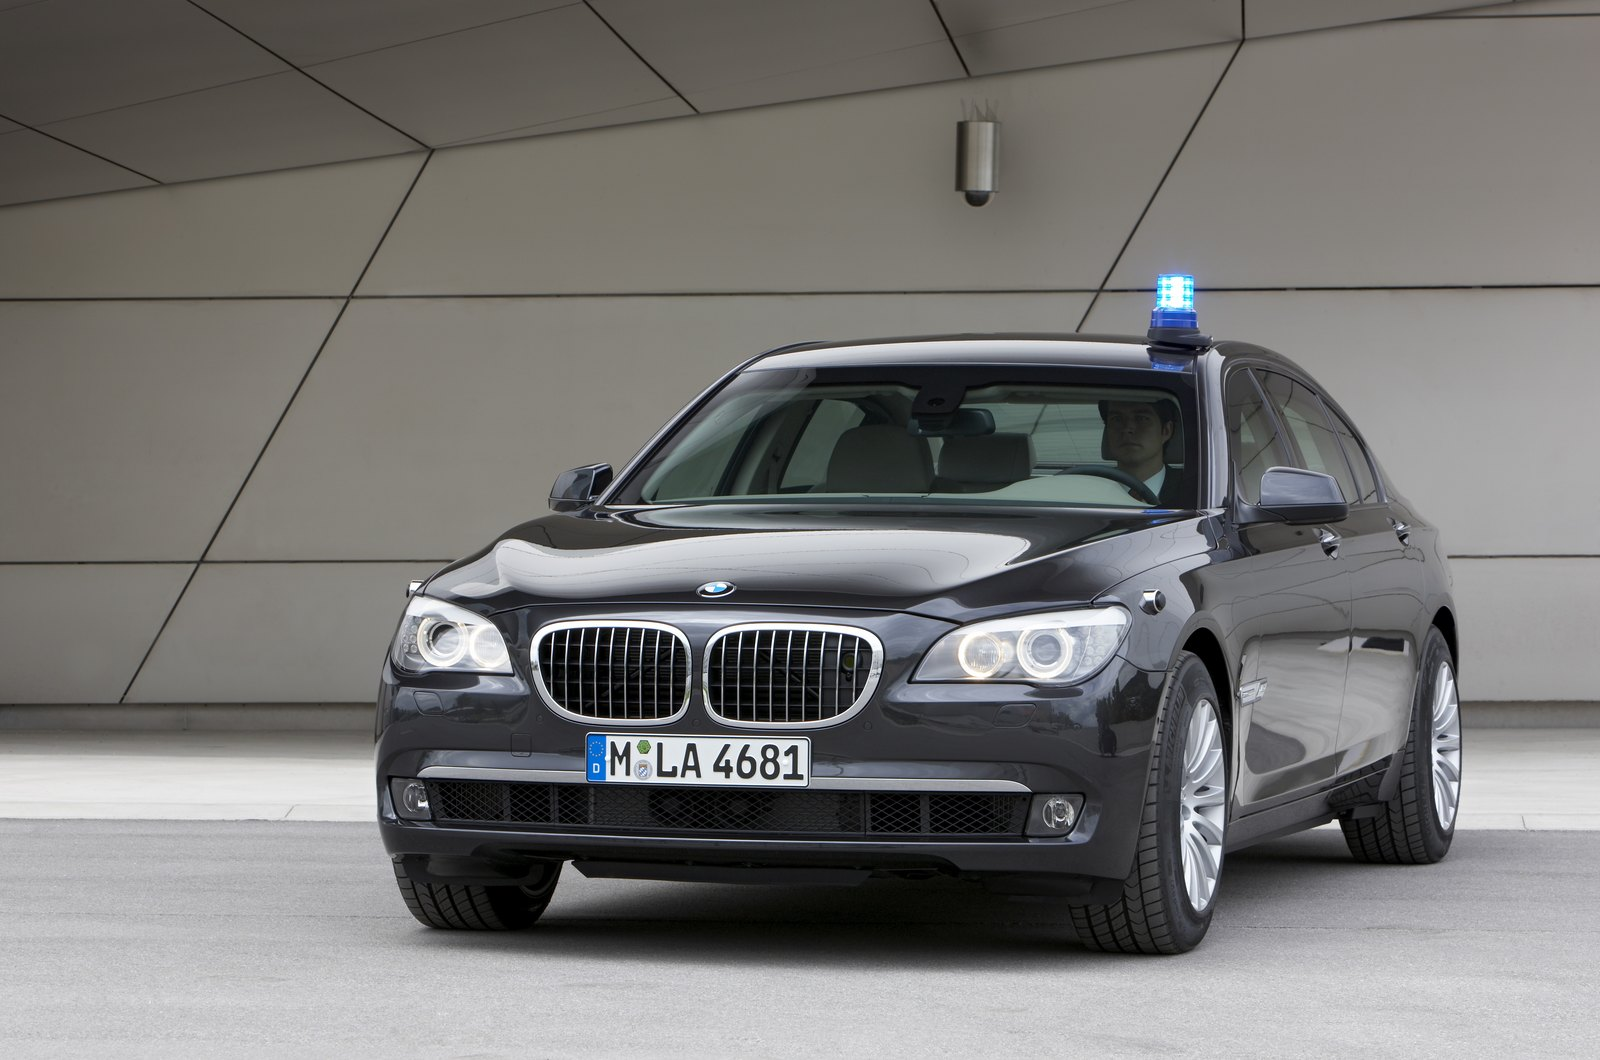 Best Cars and New Cars: BMW 7-Series High Security